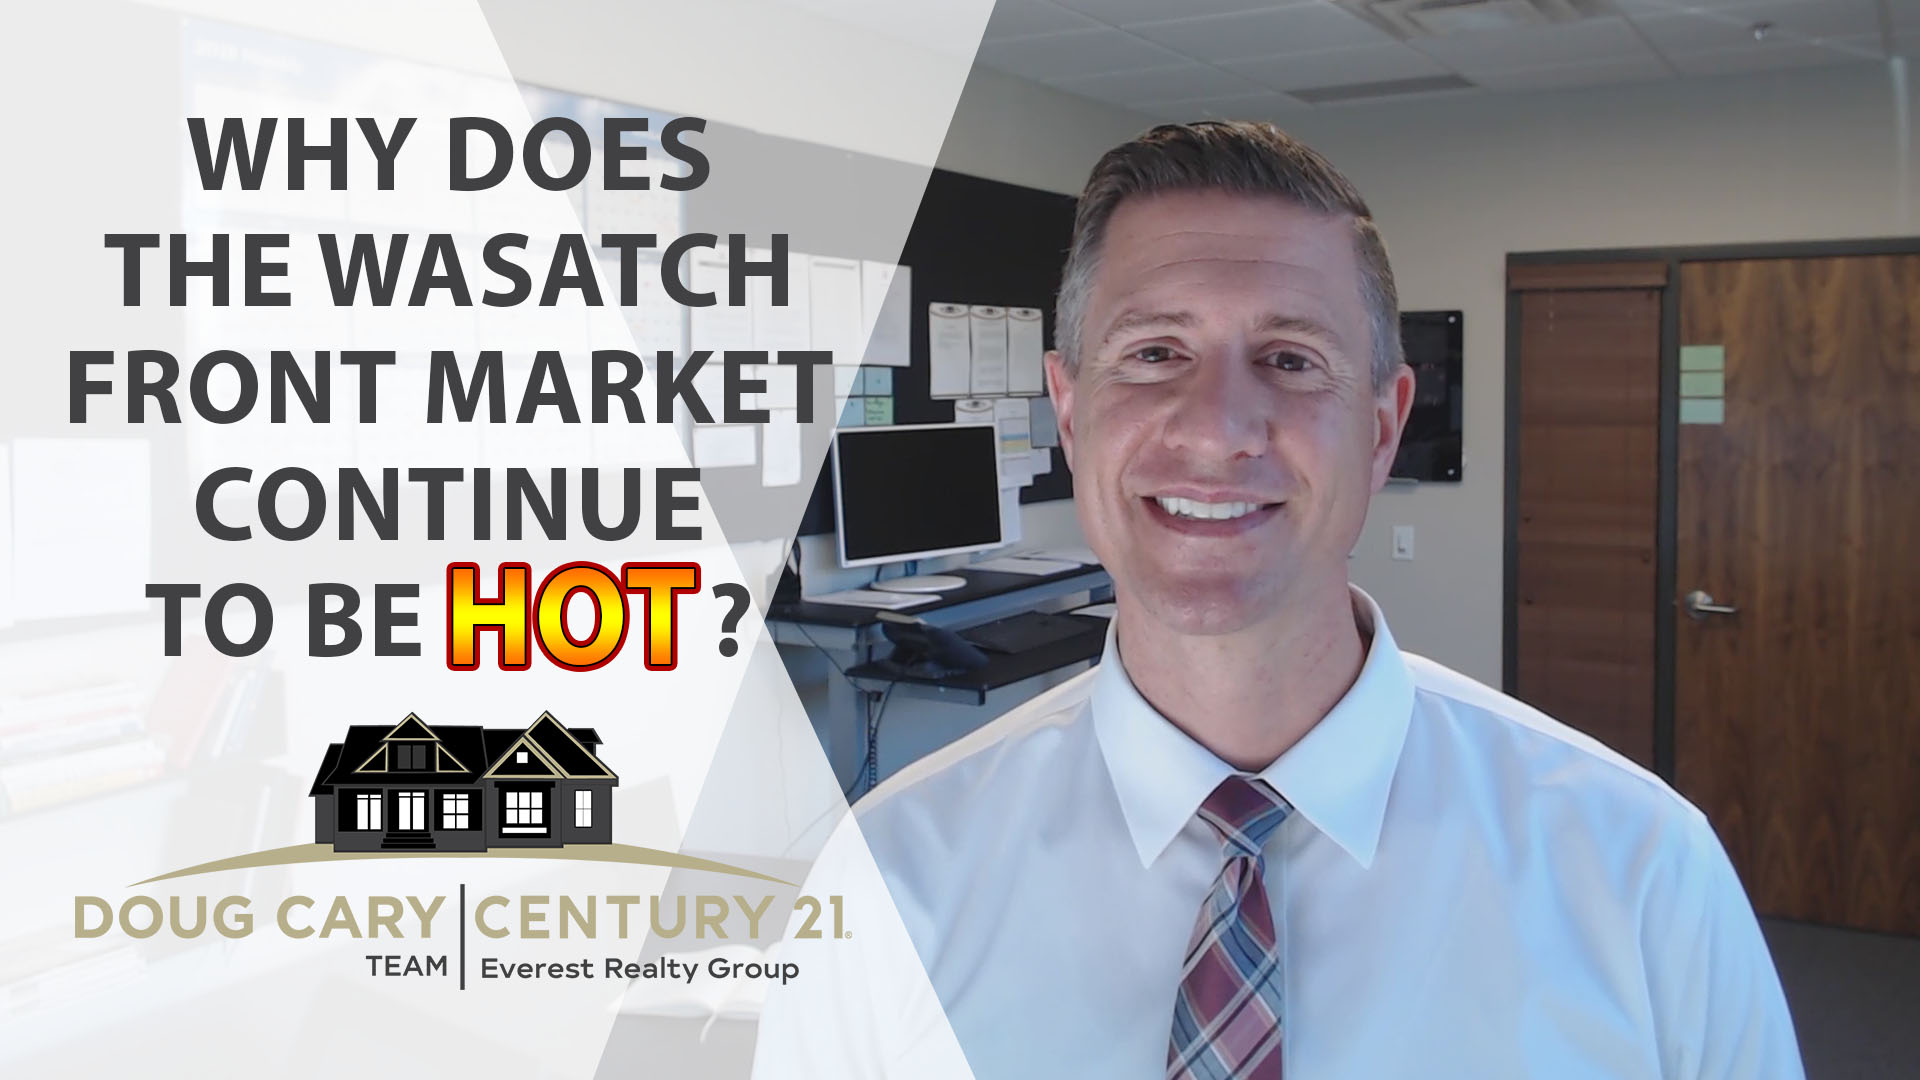 What's Going on in the Wasatch Front Real Estate Market?